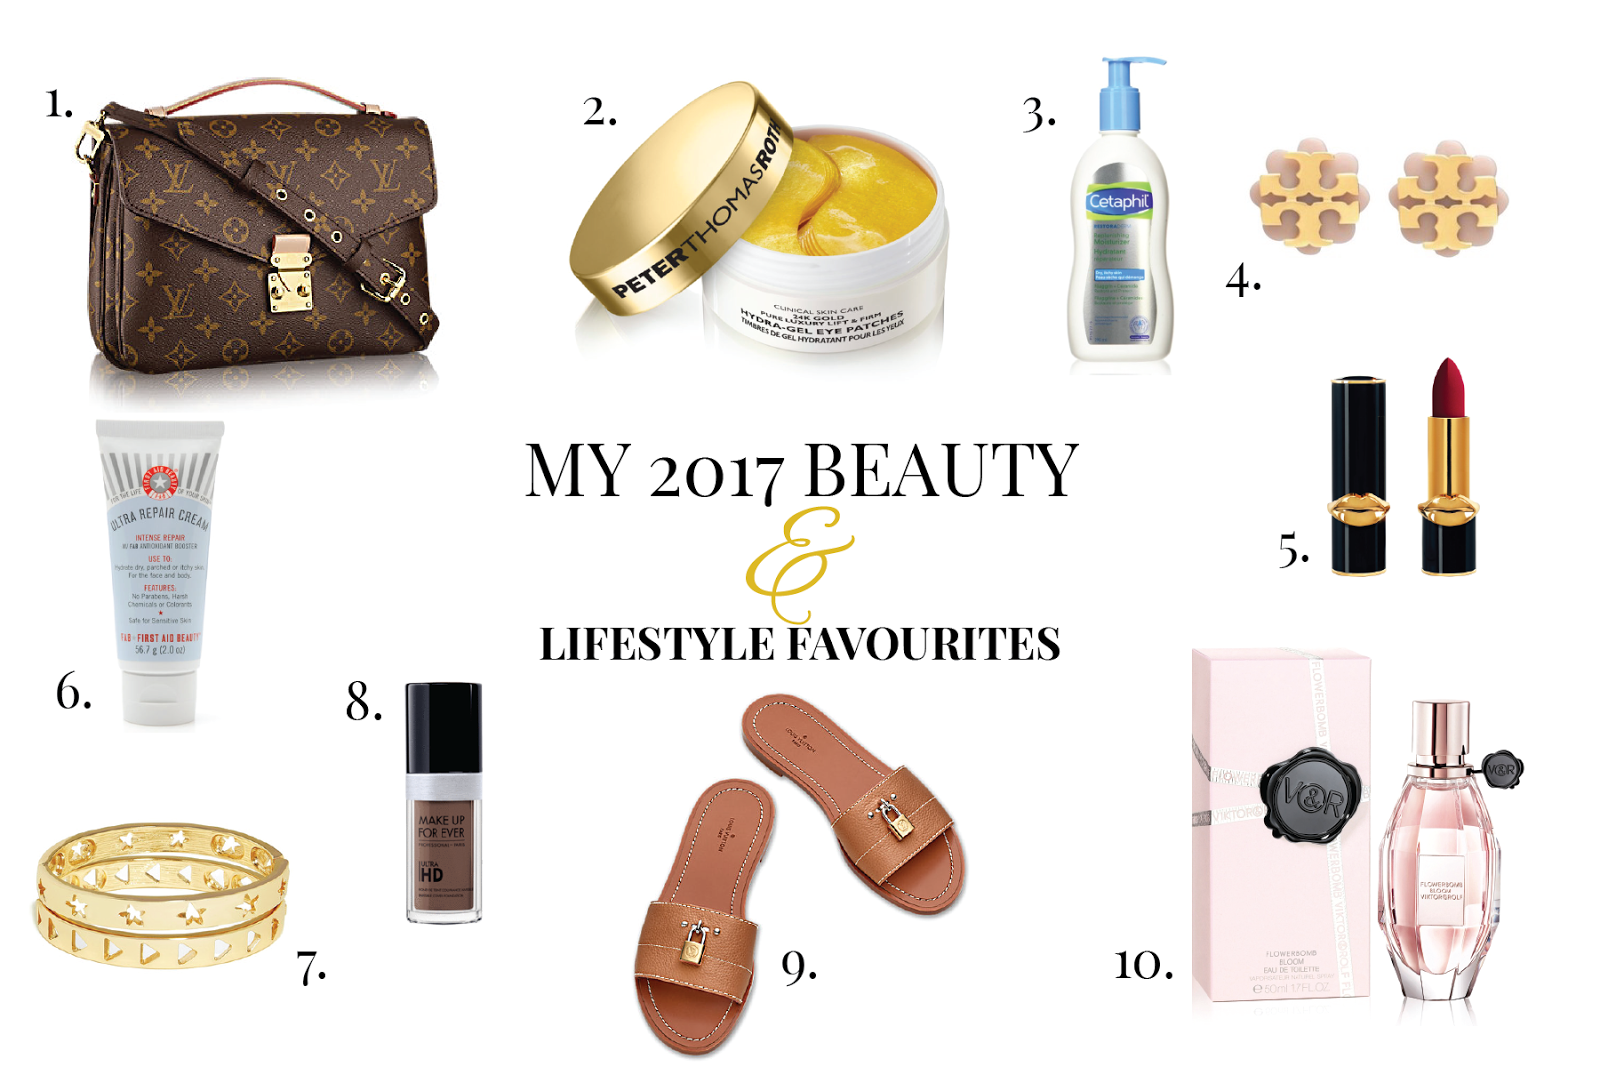 My 2017 Beauty and Lifestyle Favourites